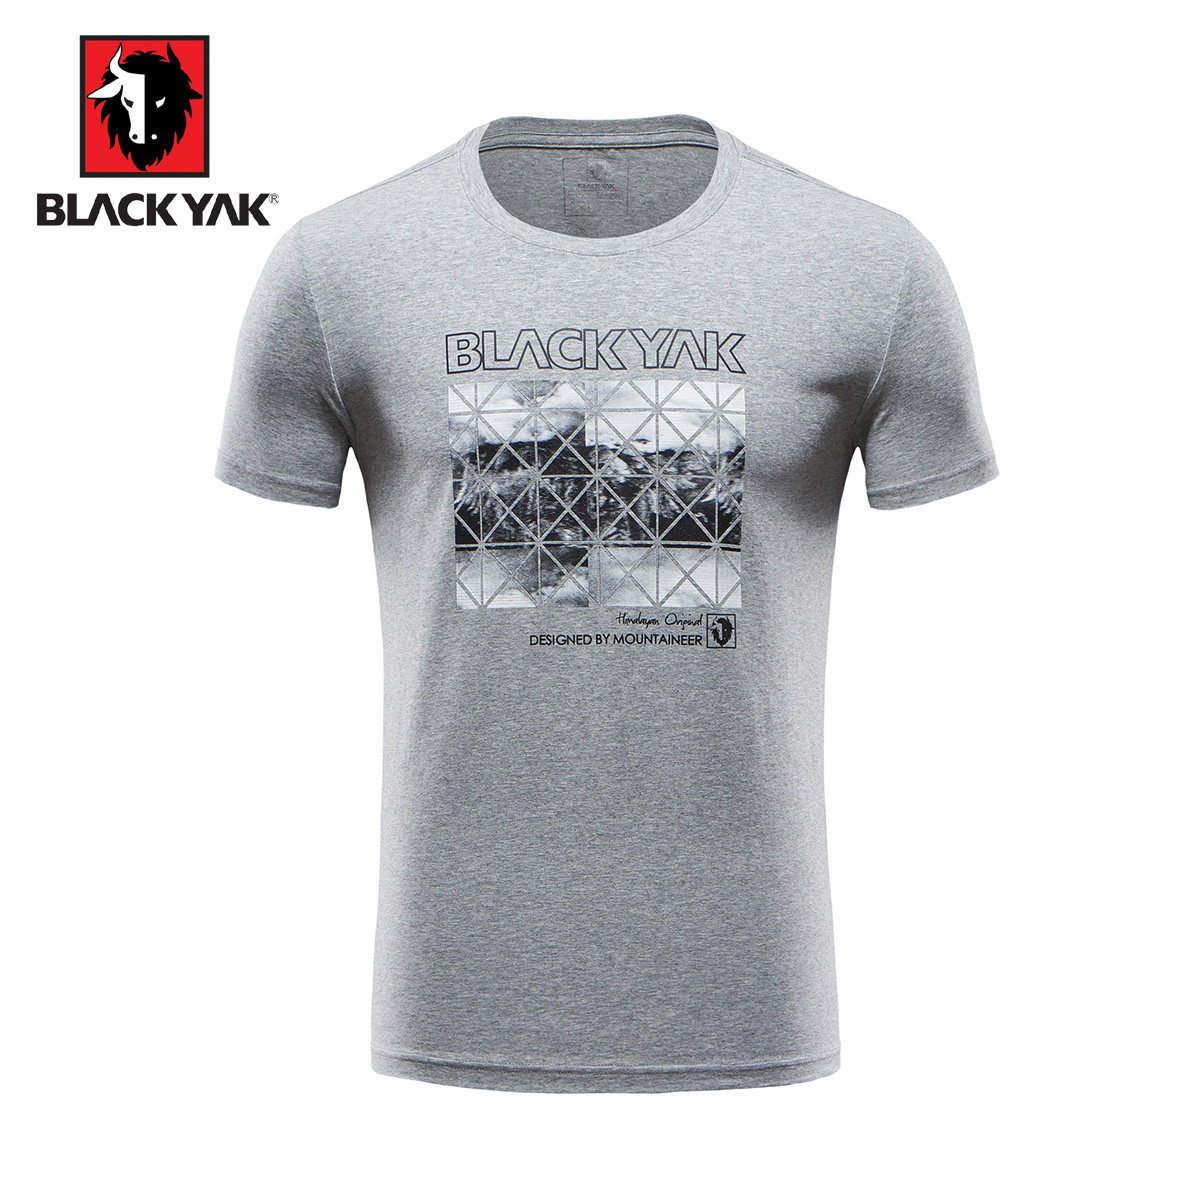 Black yak t shirt - 17 New Black Yak Bulaiyake Spring Summer Men S Casual Stretch Short Sleeve T Shirt Skm133